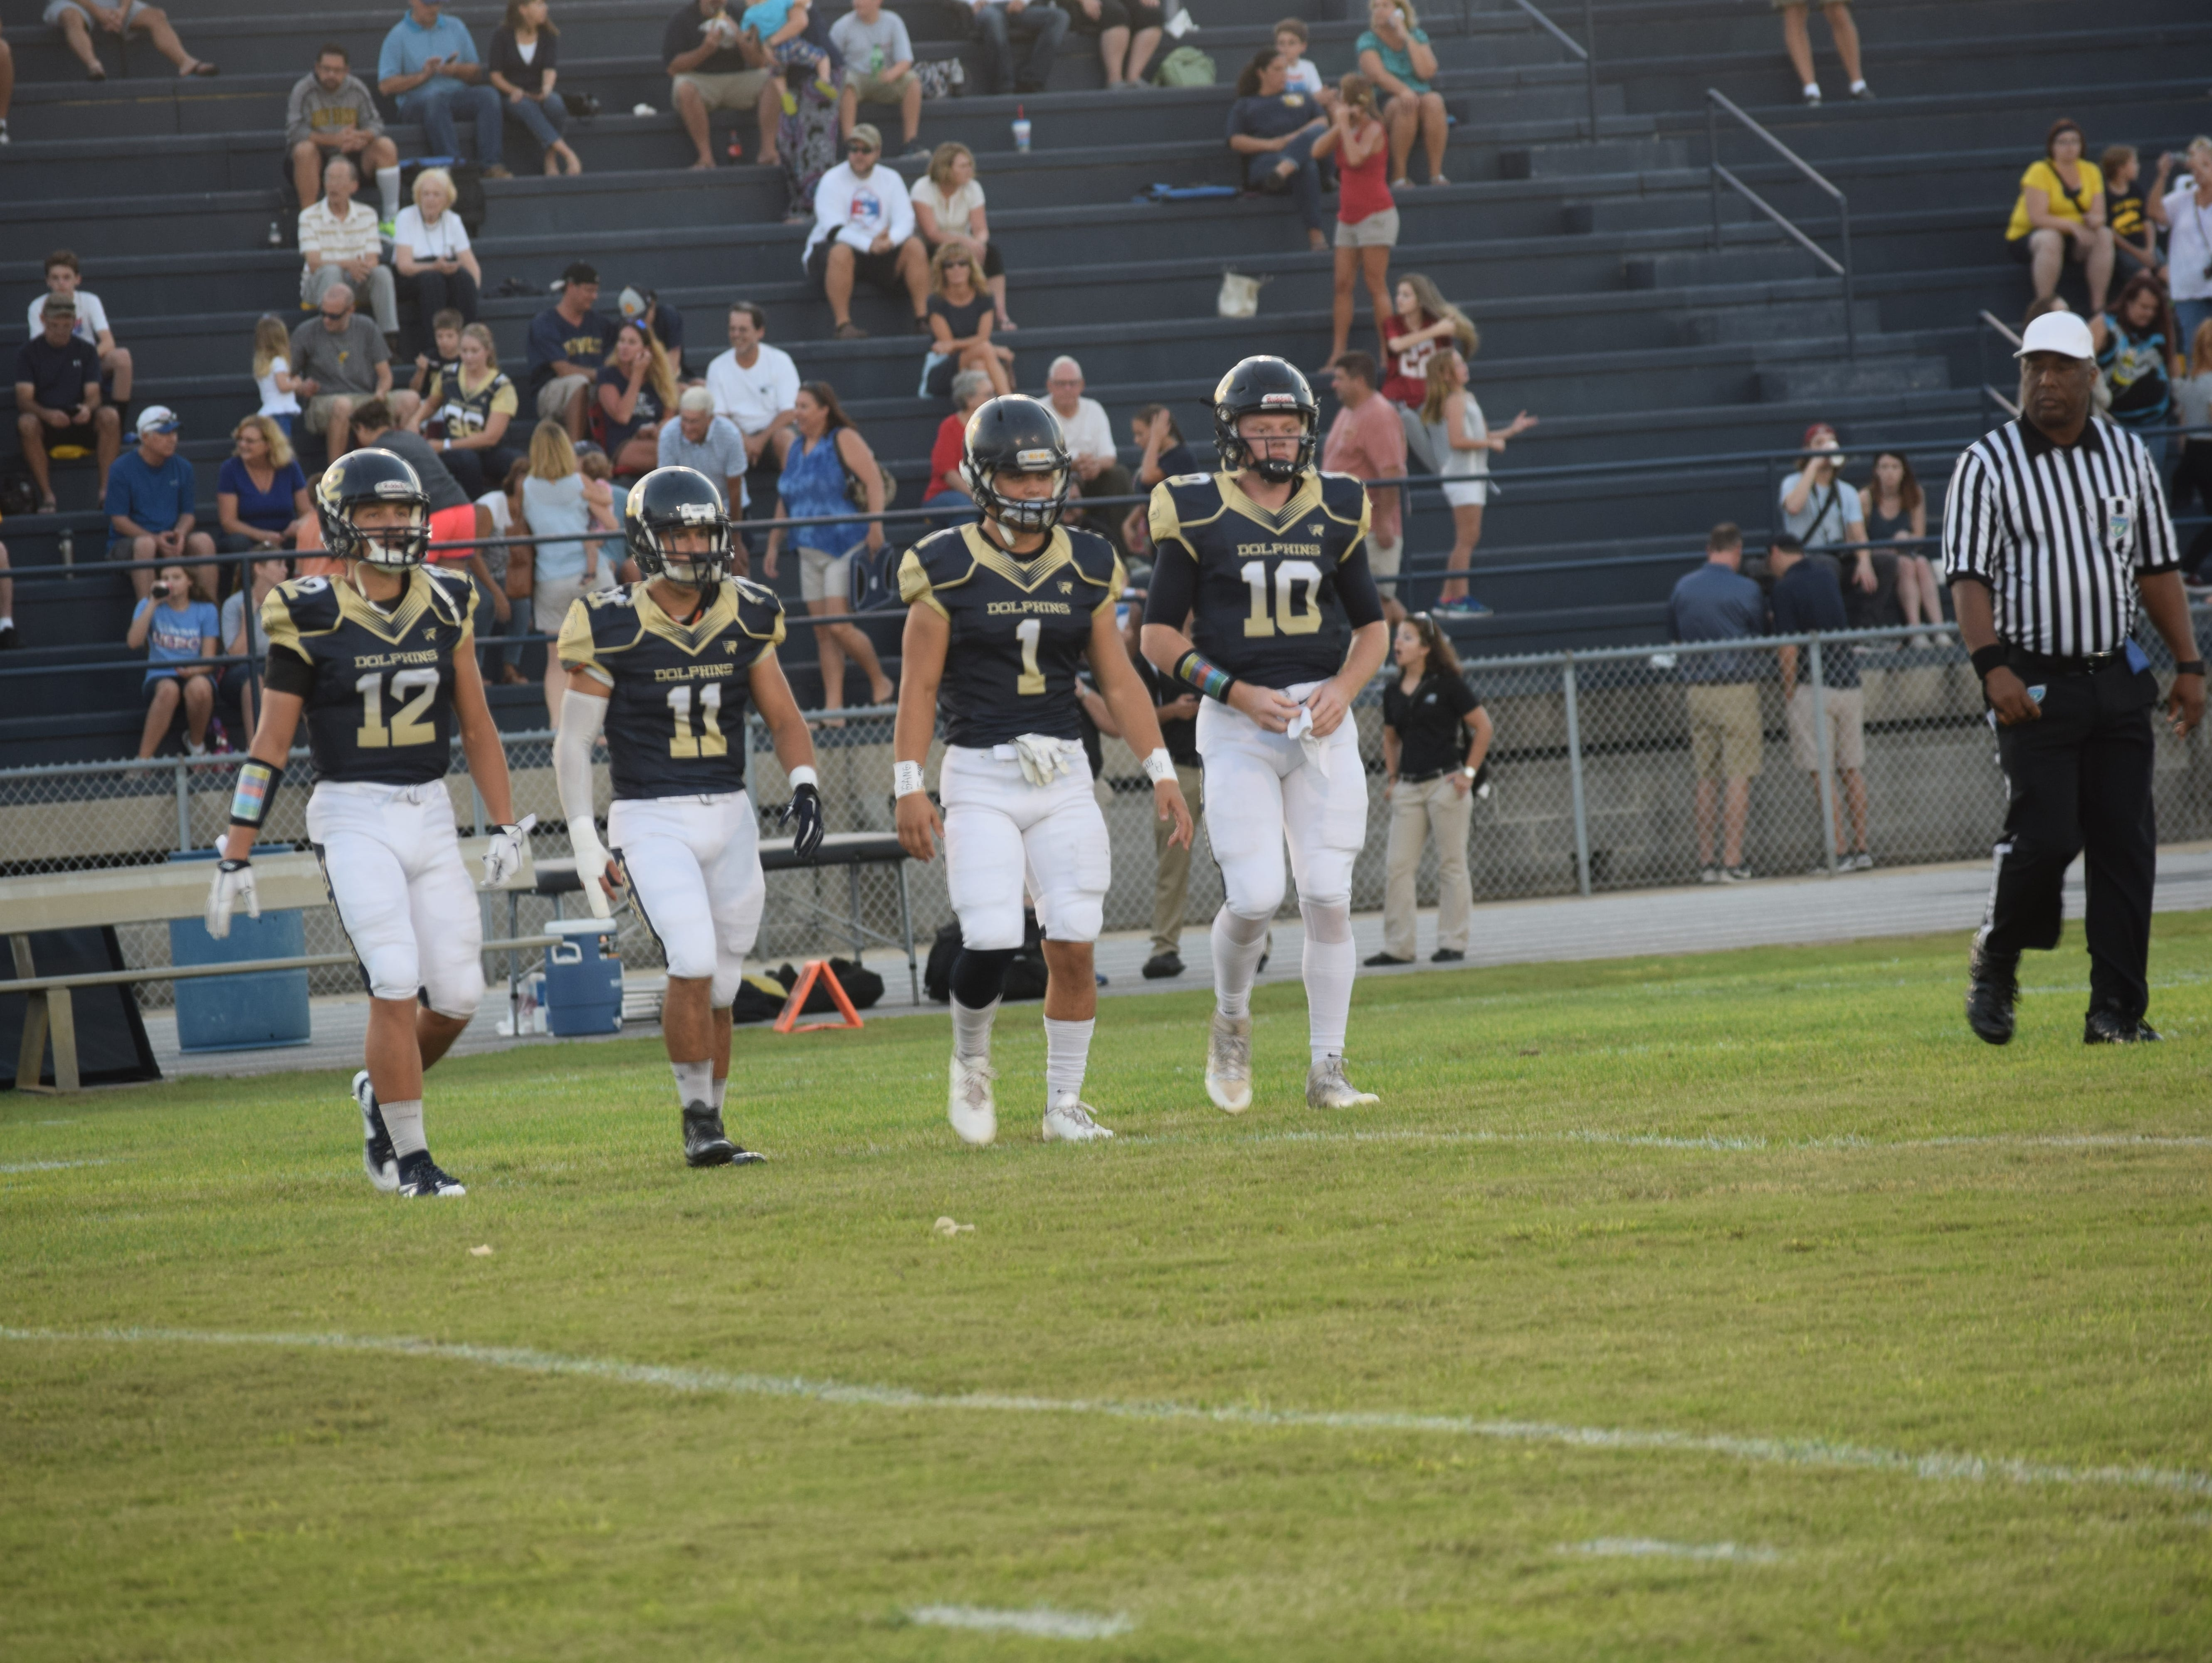 Gulf Breeze team captains Cole Sheppard (12), Ben Dobry (11), Logan Green (1) and Tyler Phelps walk out for opening coin toss Friday night before game against Northview.